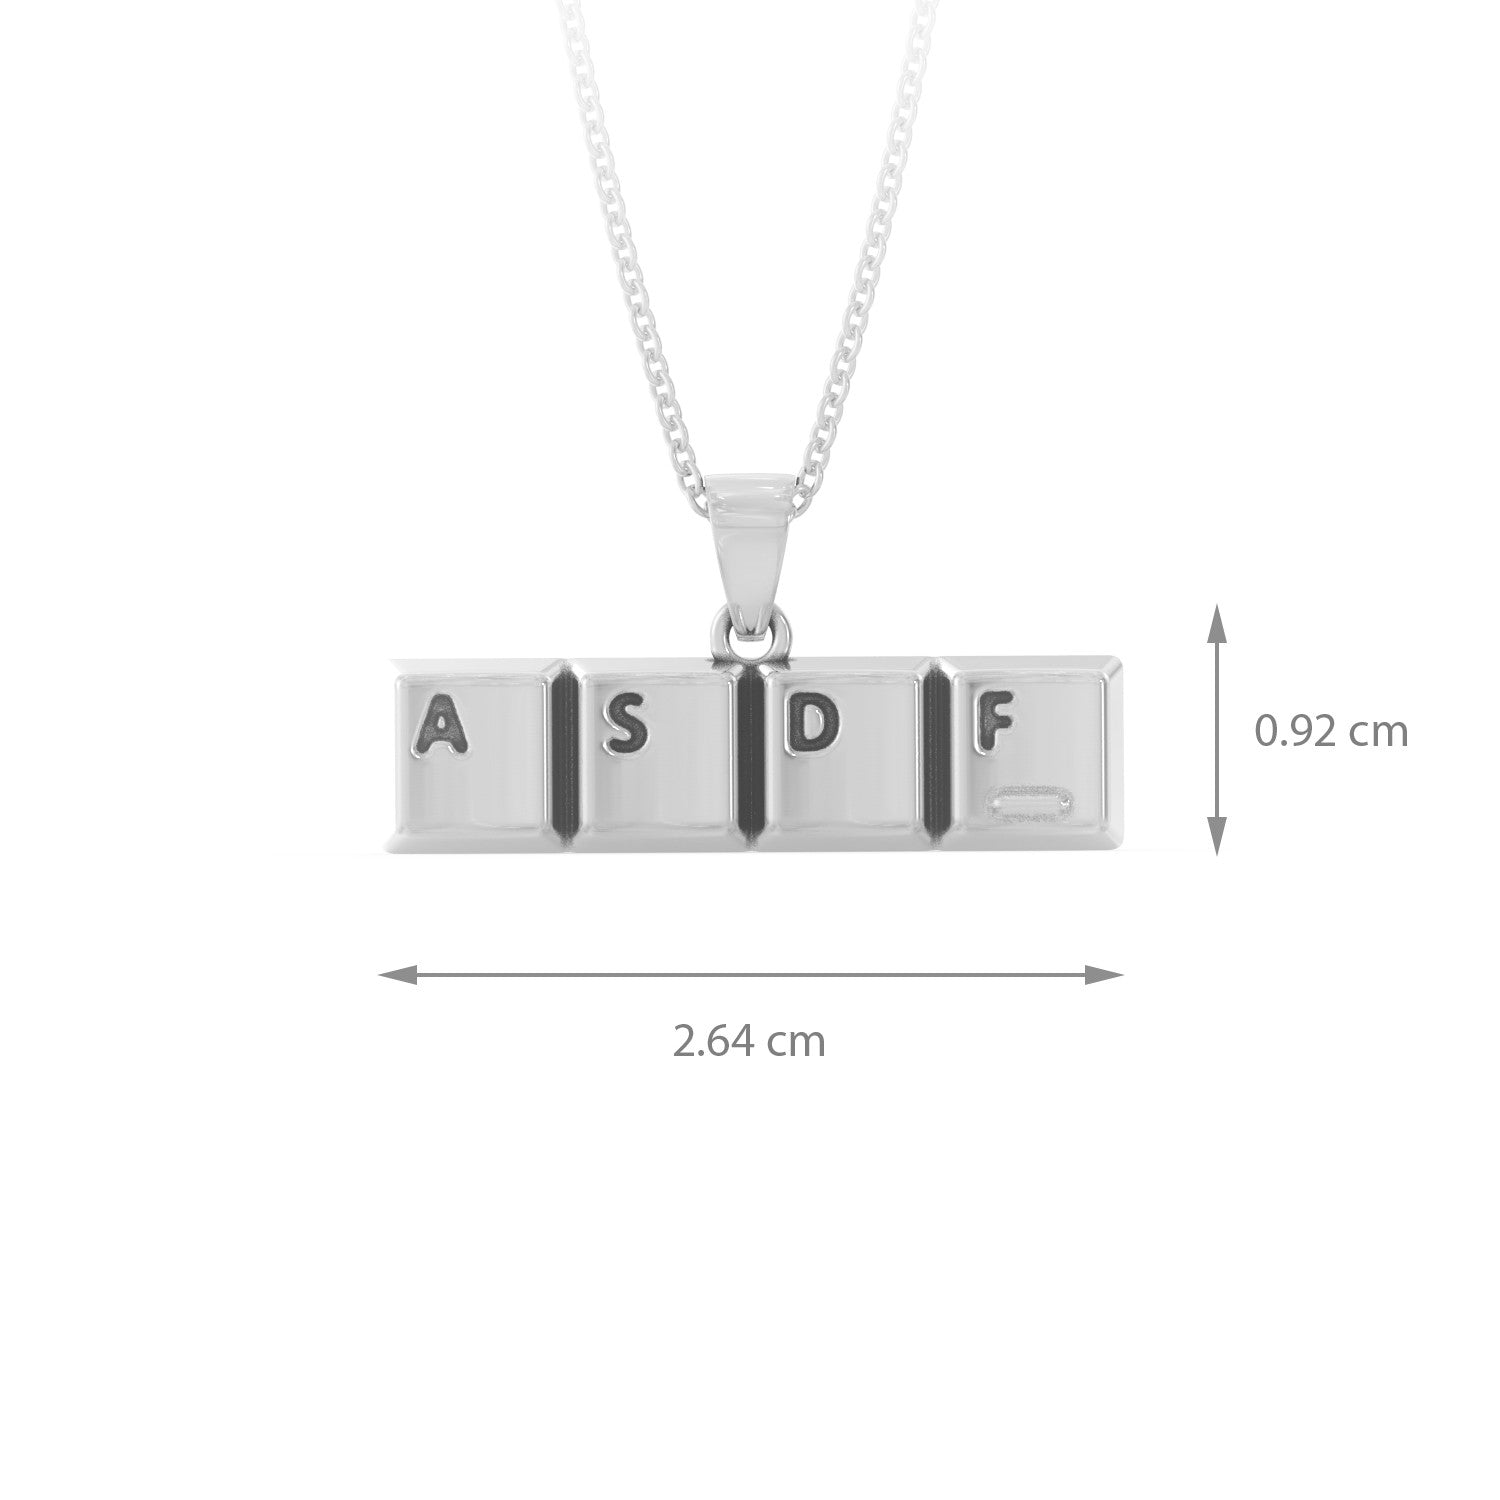 ASDF Heart Necklace